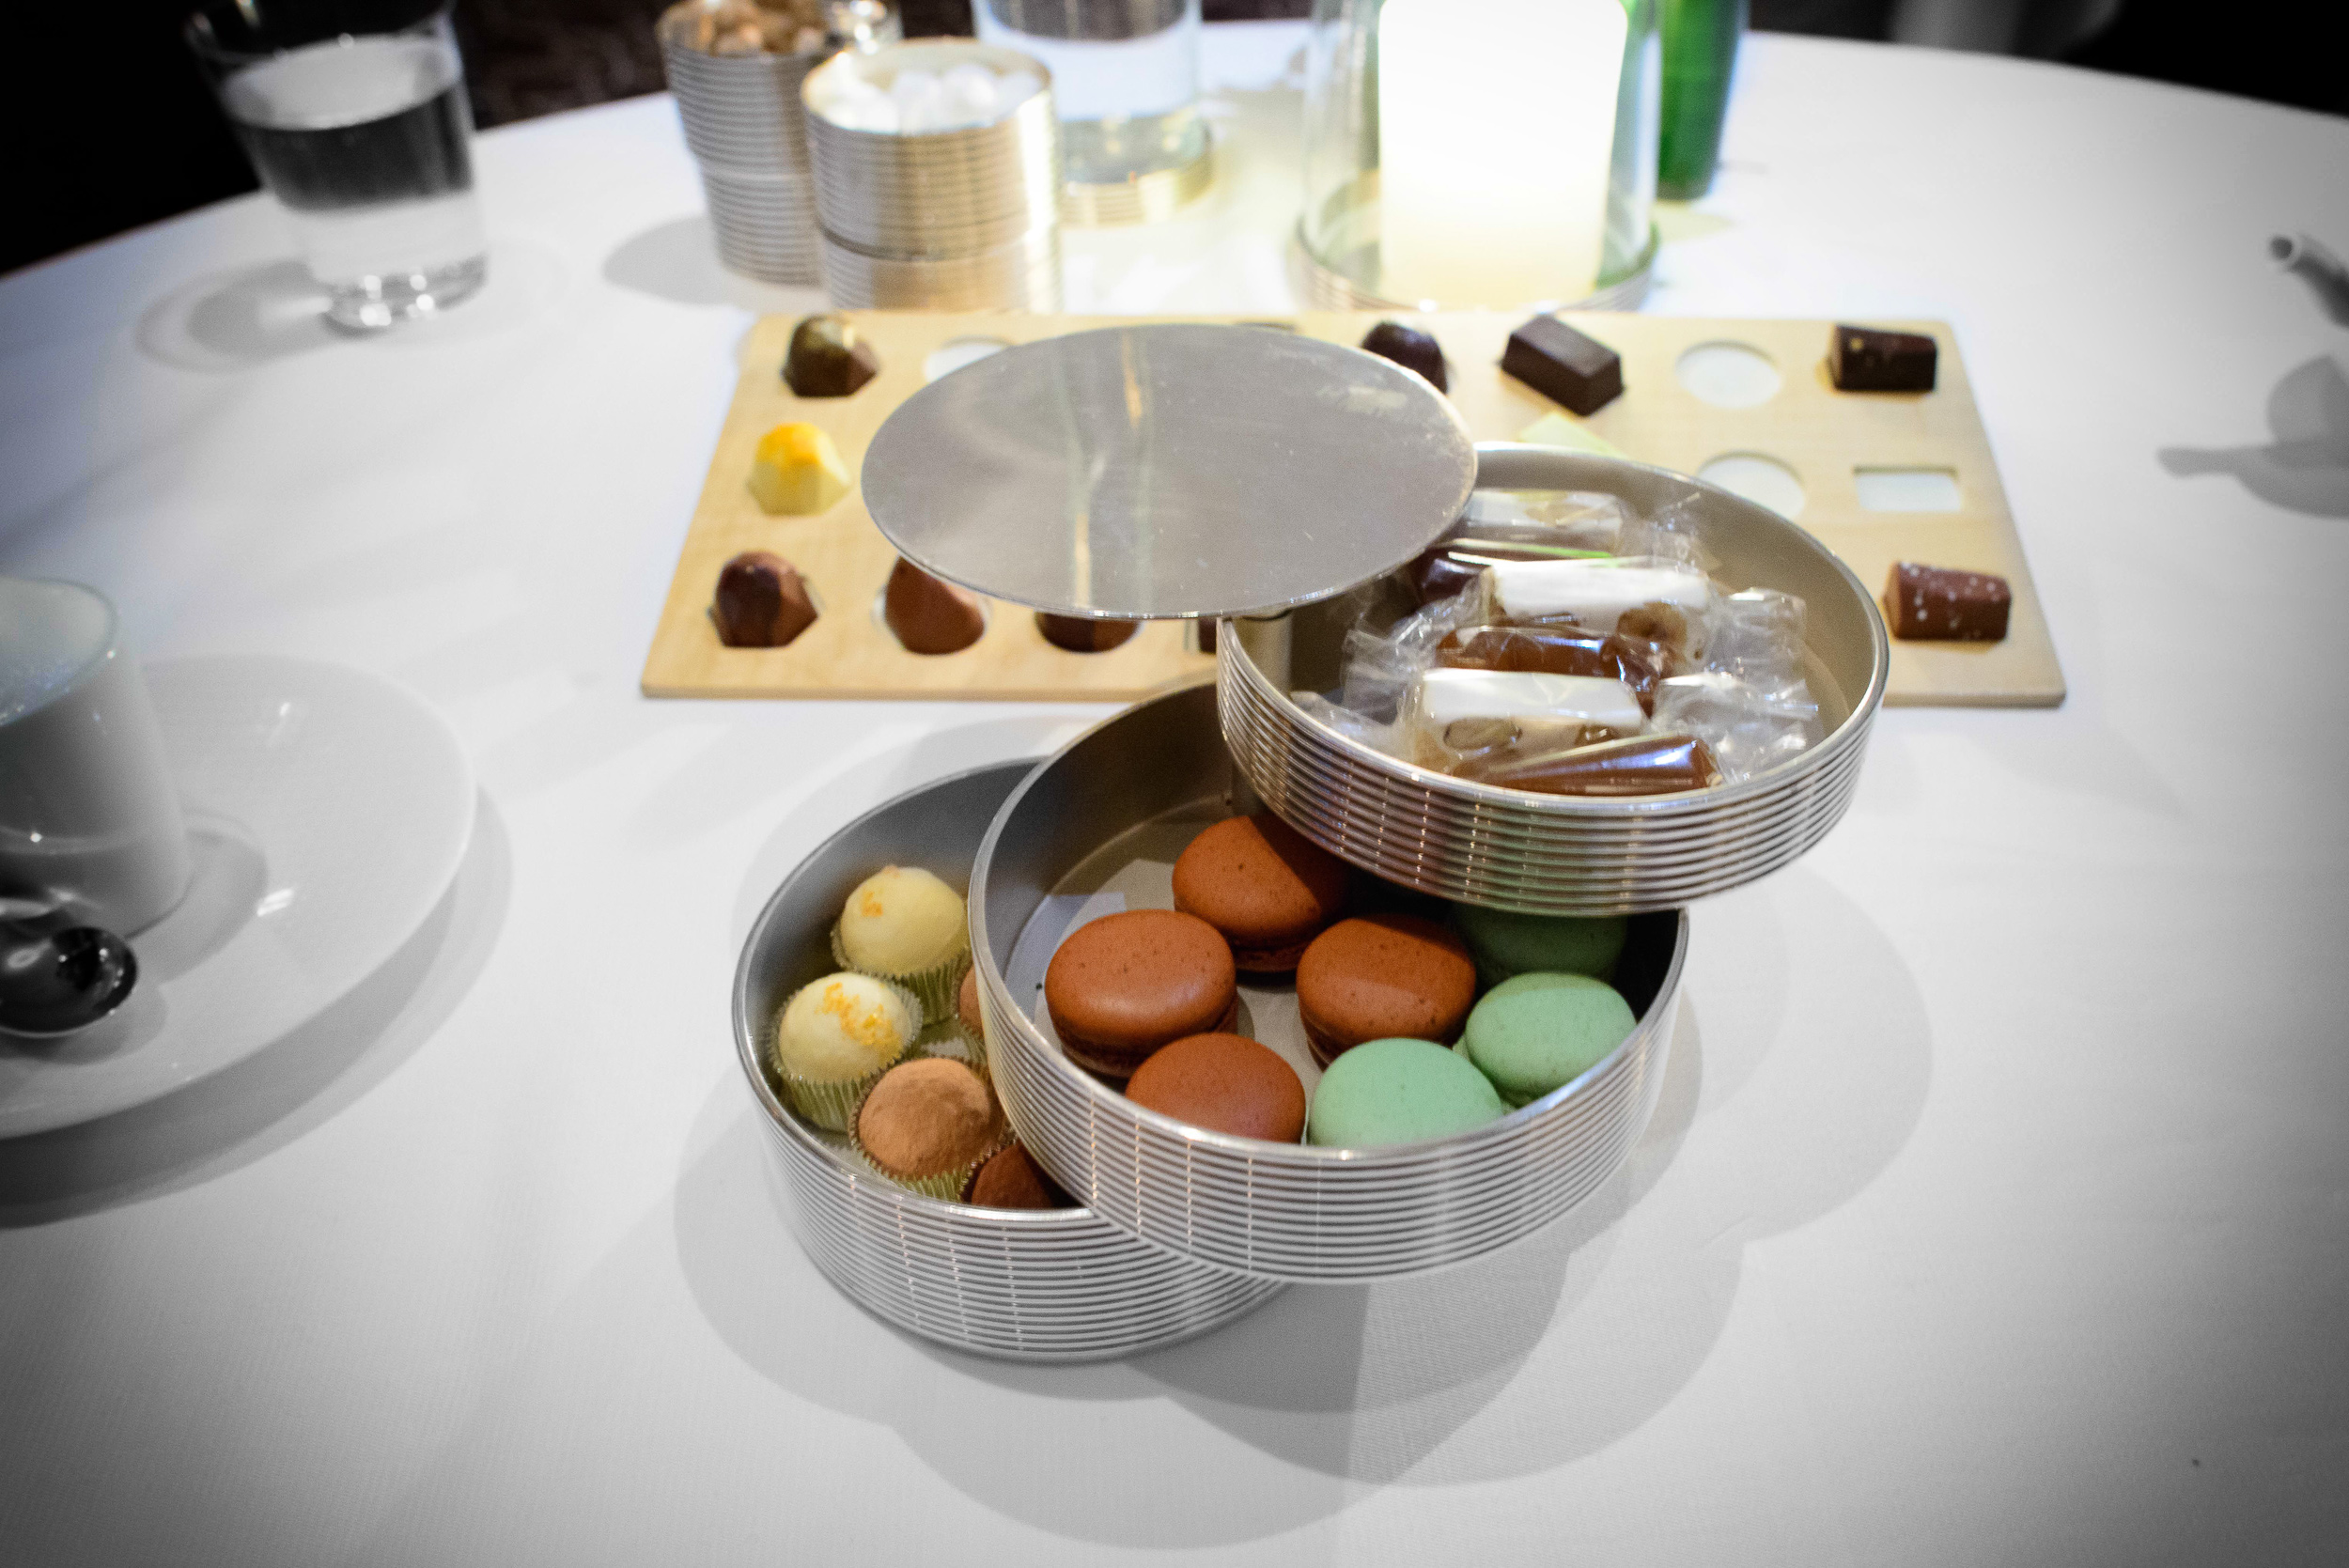 22nd Course: Macarons, nougat, caramel, and truffles